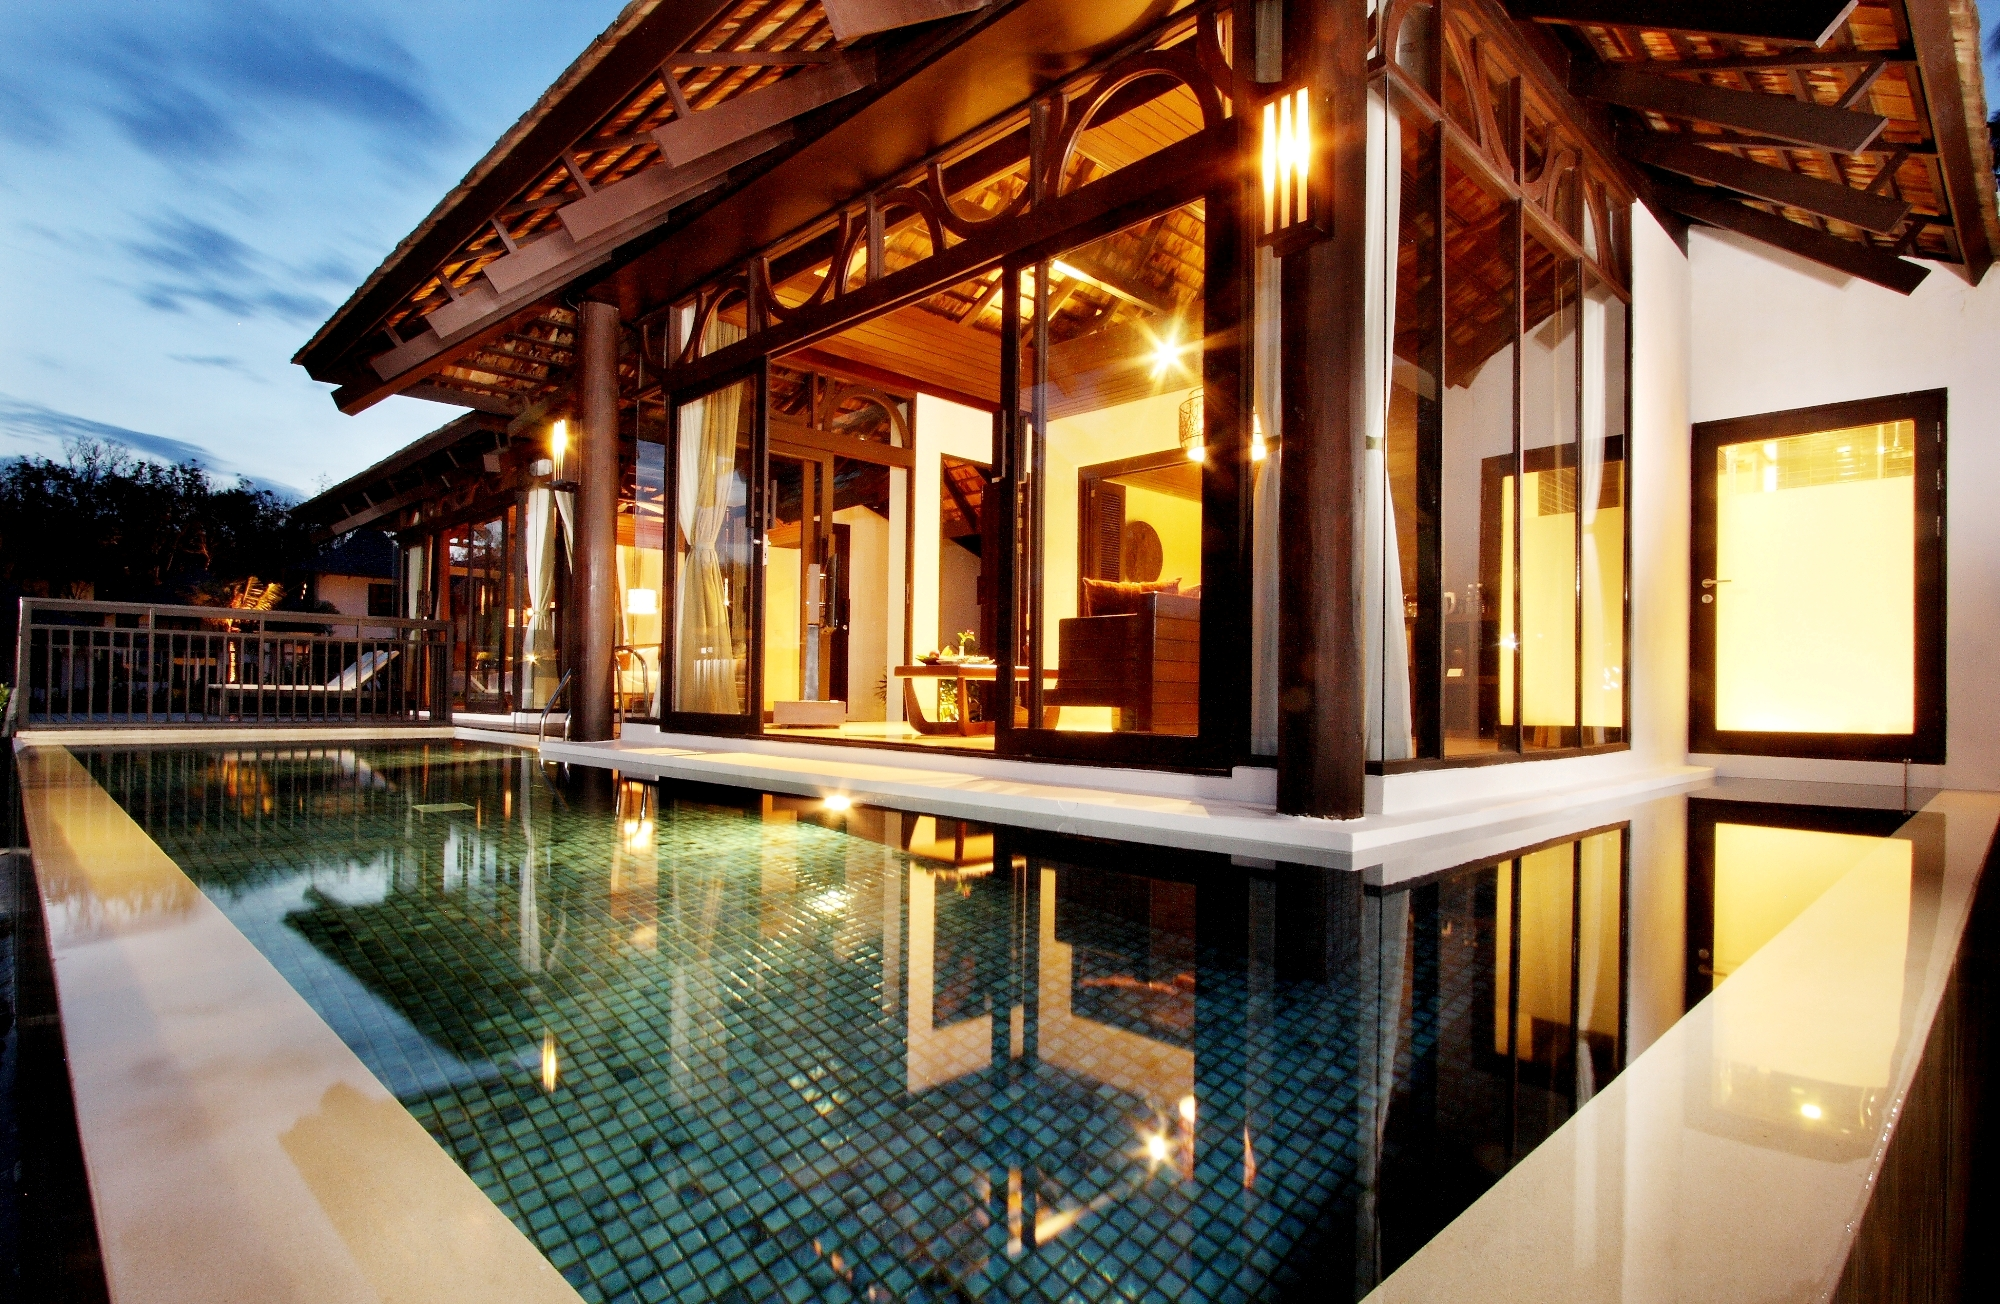 002_Two_Bedroom_Pool_Villa-Exterior_The_Vijitt_Resort_Phuket